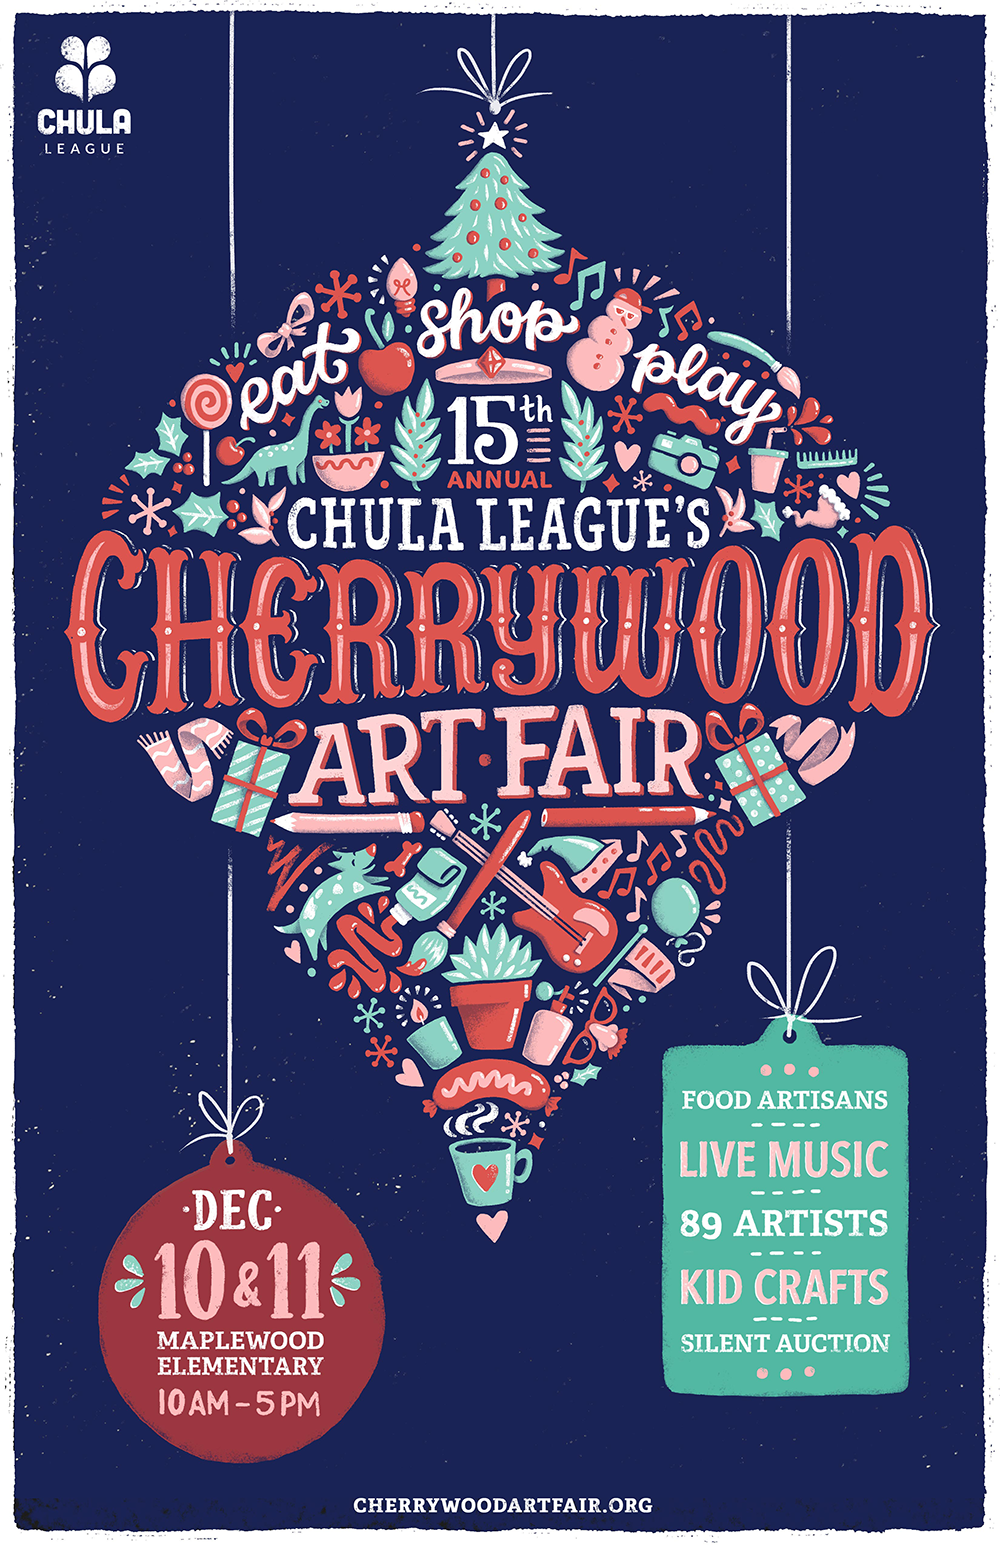 Cherrywood Art Fair Poster Illustration